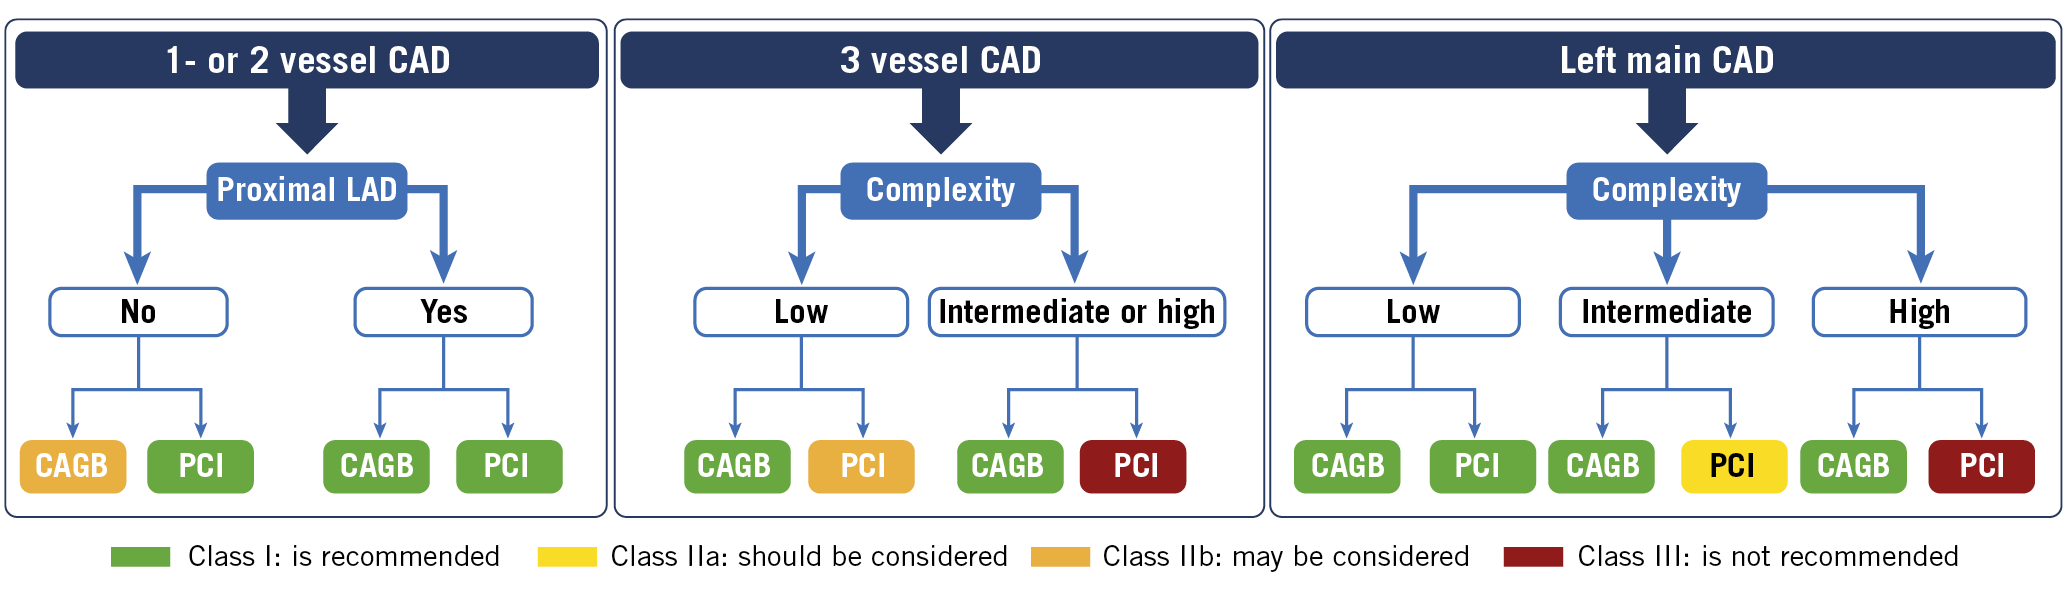 Figure 1. Recommendations for coronary revascularisation adapted from the 2019 ESC guidelines on CVD and pre-diabetes and diabetes18. Low disease complexity coronary anatomy (SYNTAX score 0-22), intermediate disease complexity (SYNTAX score 23-32) and high disease complexity (SYNTAX score ≥33). CABG: coronary artery bypass graft; CAD: coronary artery disease; PCI: percutaneous coronary intervention